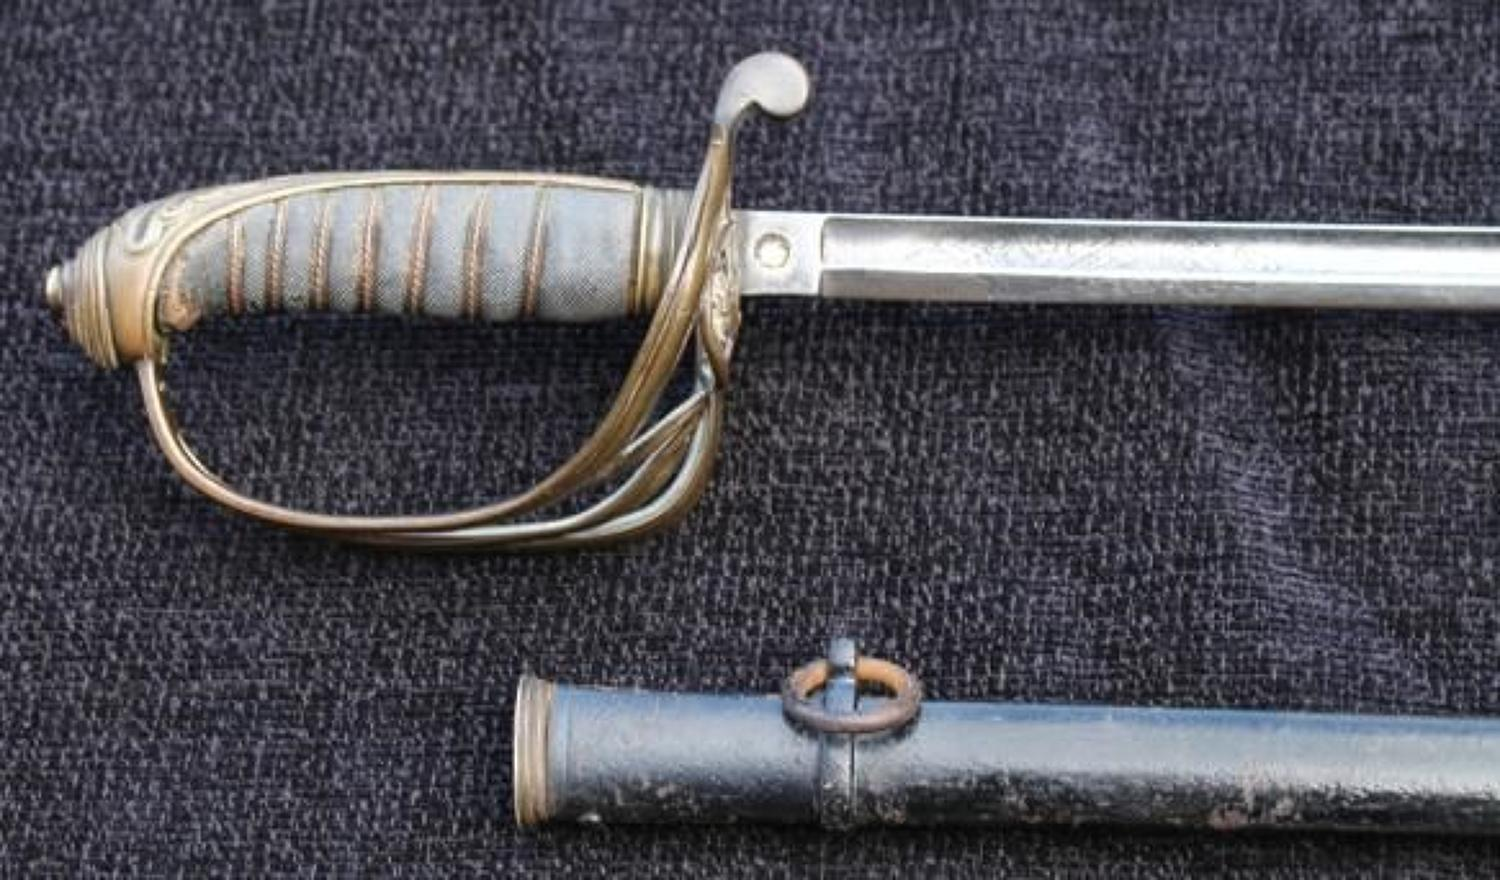 1822 Infantry Sword Named